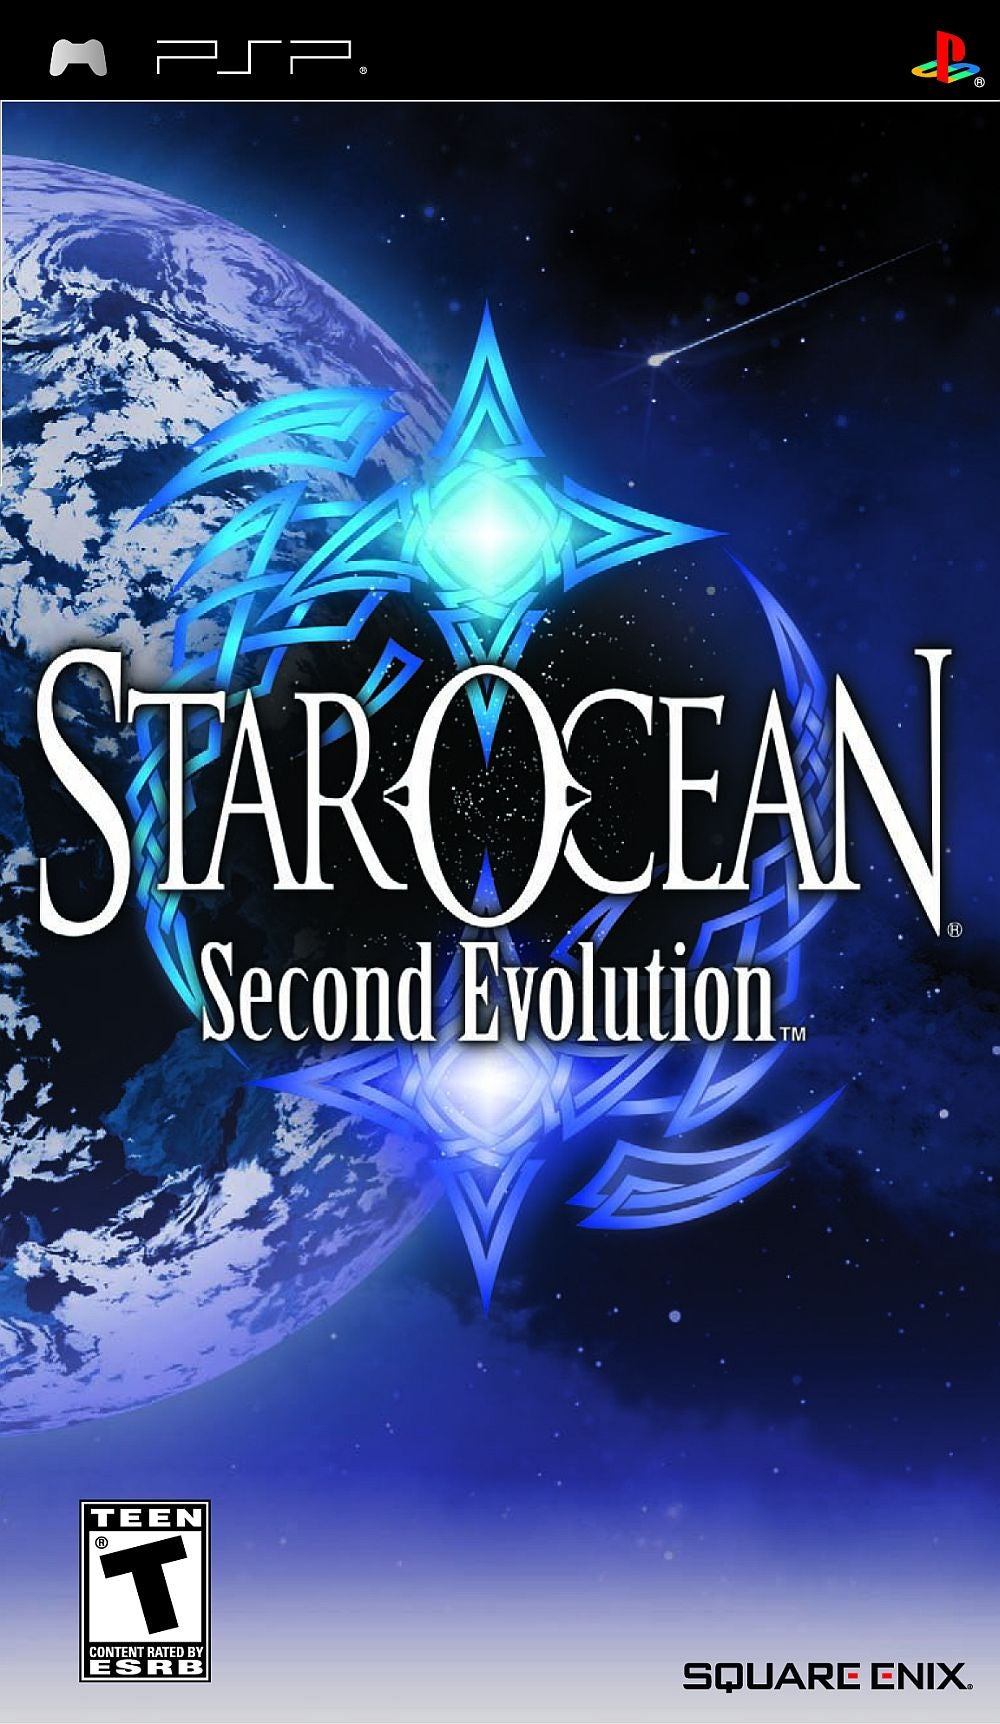 https://i0.wp.com/pcmedia.ign.com/pc/image/object/905/905545/star-ocean-2_PSP_US_ESRB.jpg